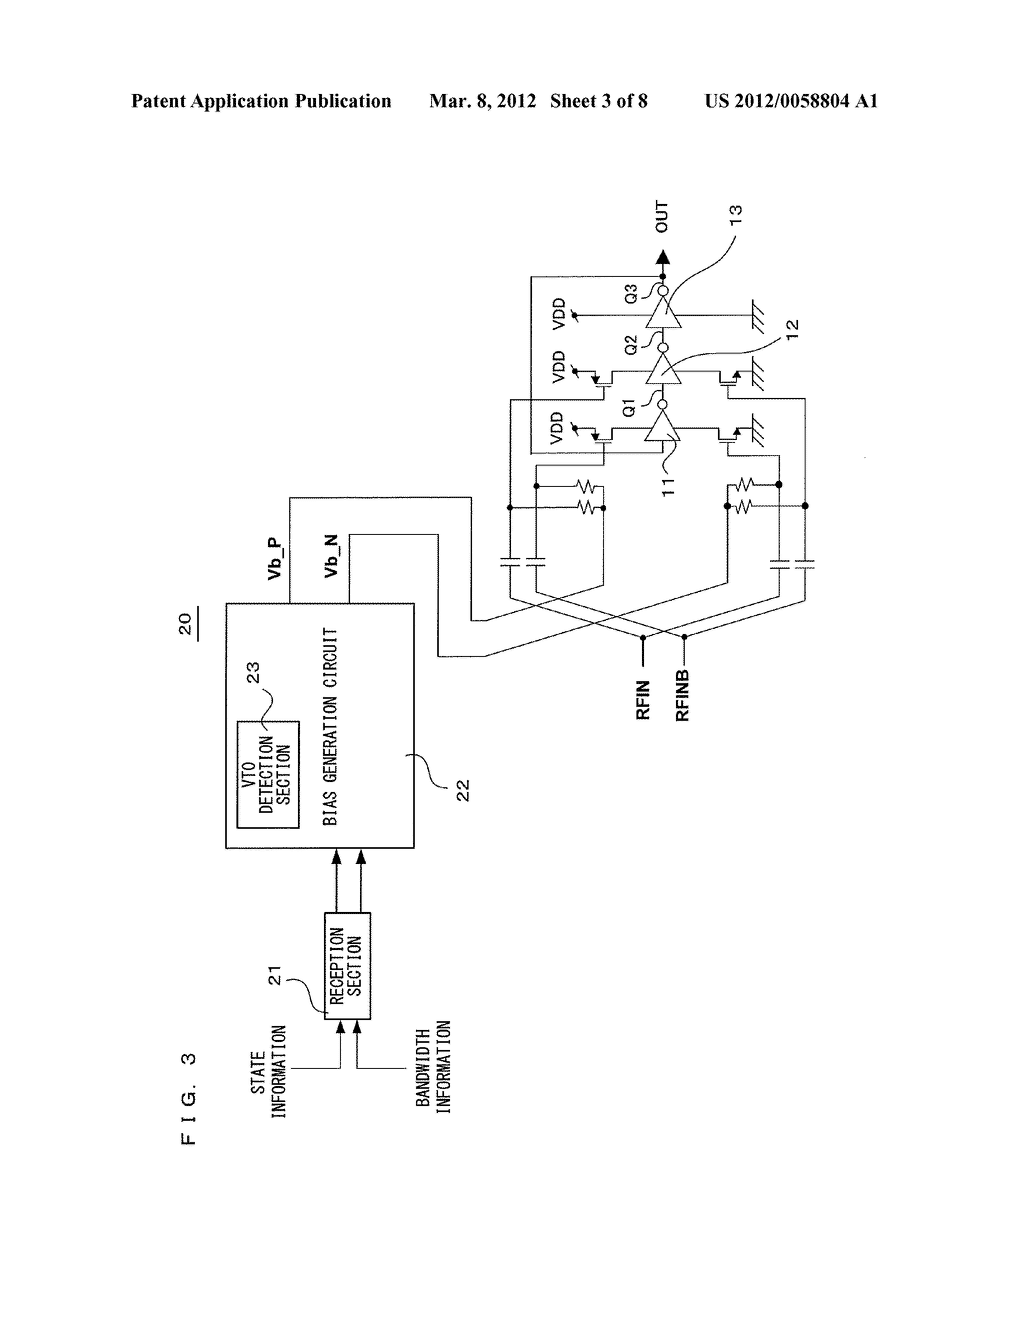 Cmos Inverter Type Frequency Divider Circuit And Mobile Phone Diagram Including The Schematic Image 04